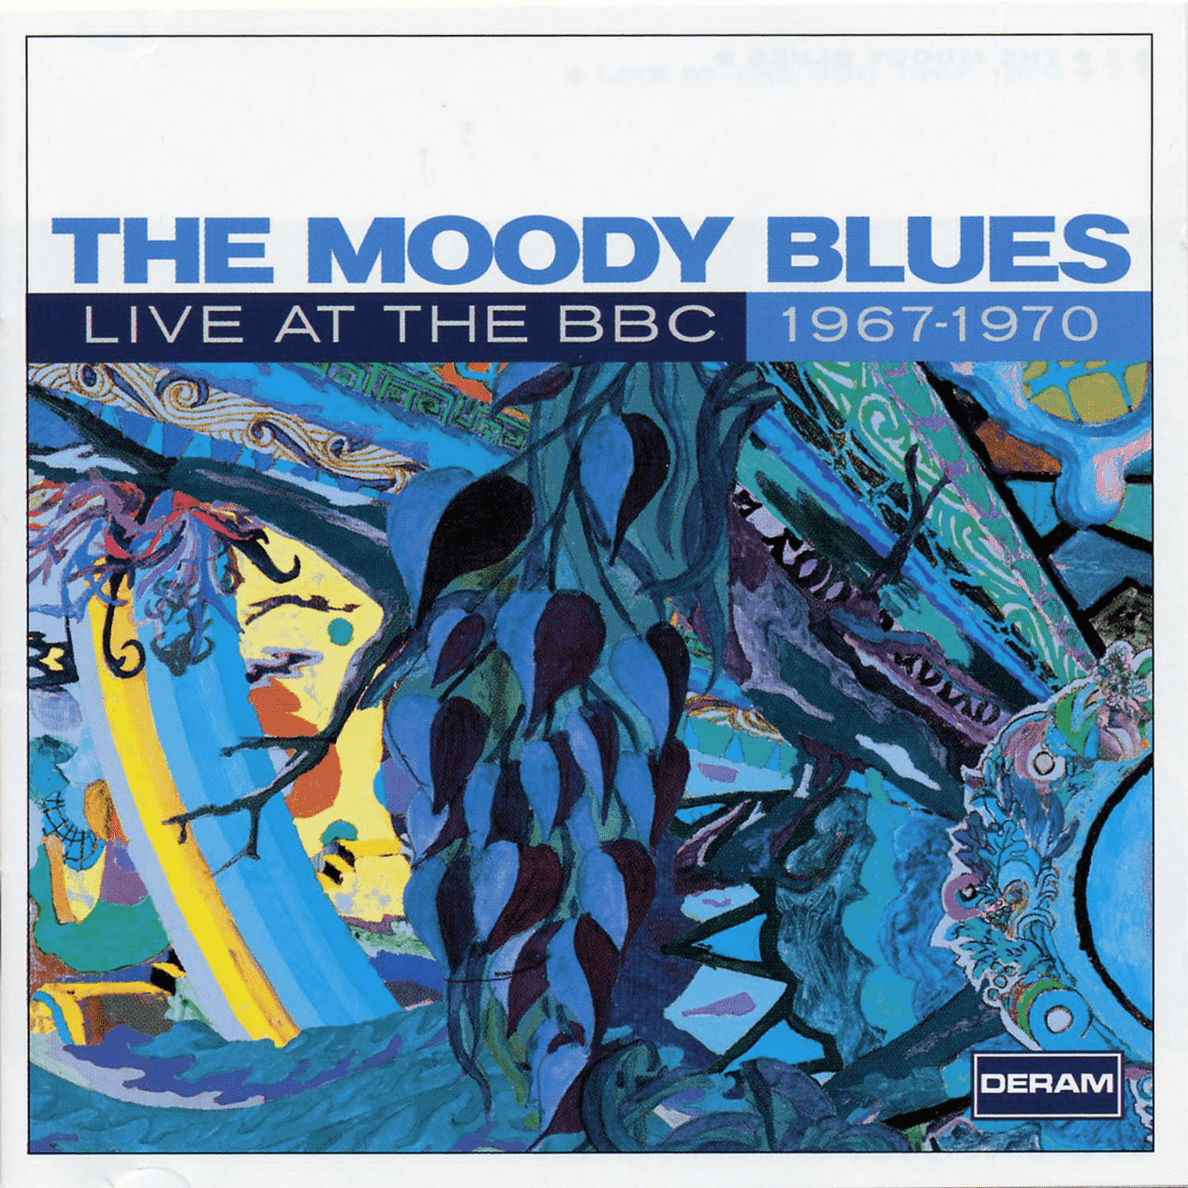 Live At The Bbc 1967-1970 The Moody Blues auf CD